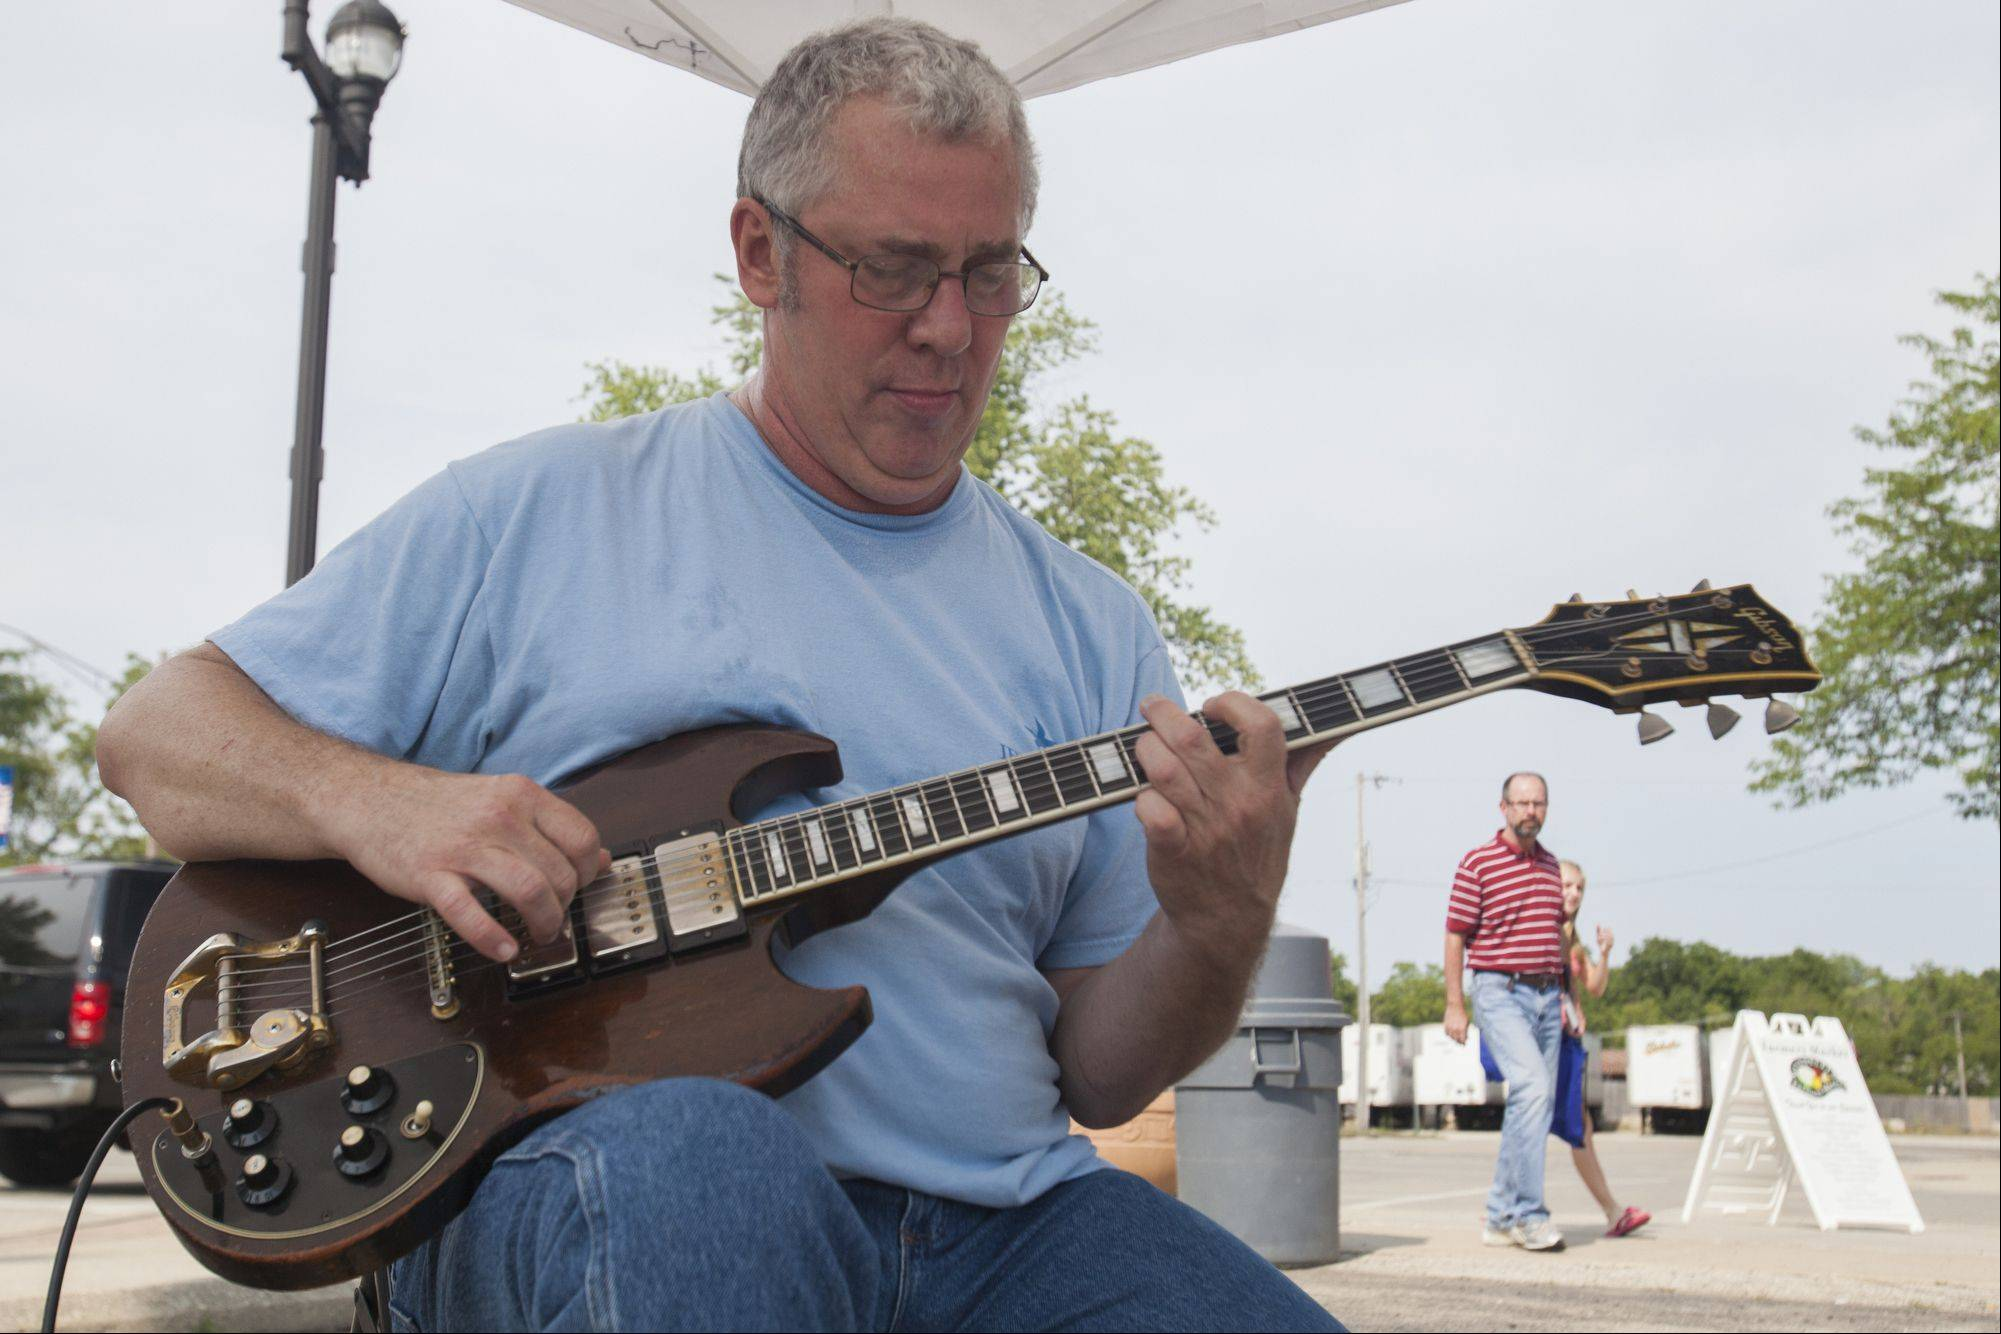 Jazz musician Doug Blake, of Blake N' Blue fame, plays for people as they shop Mundelein's Farmers Market, located at the corner of Seymour and Park Streets.